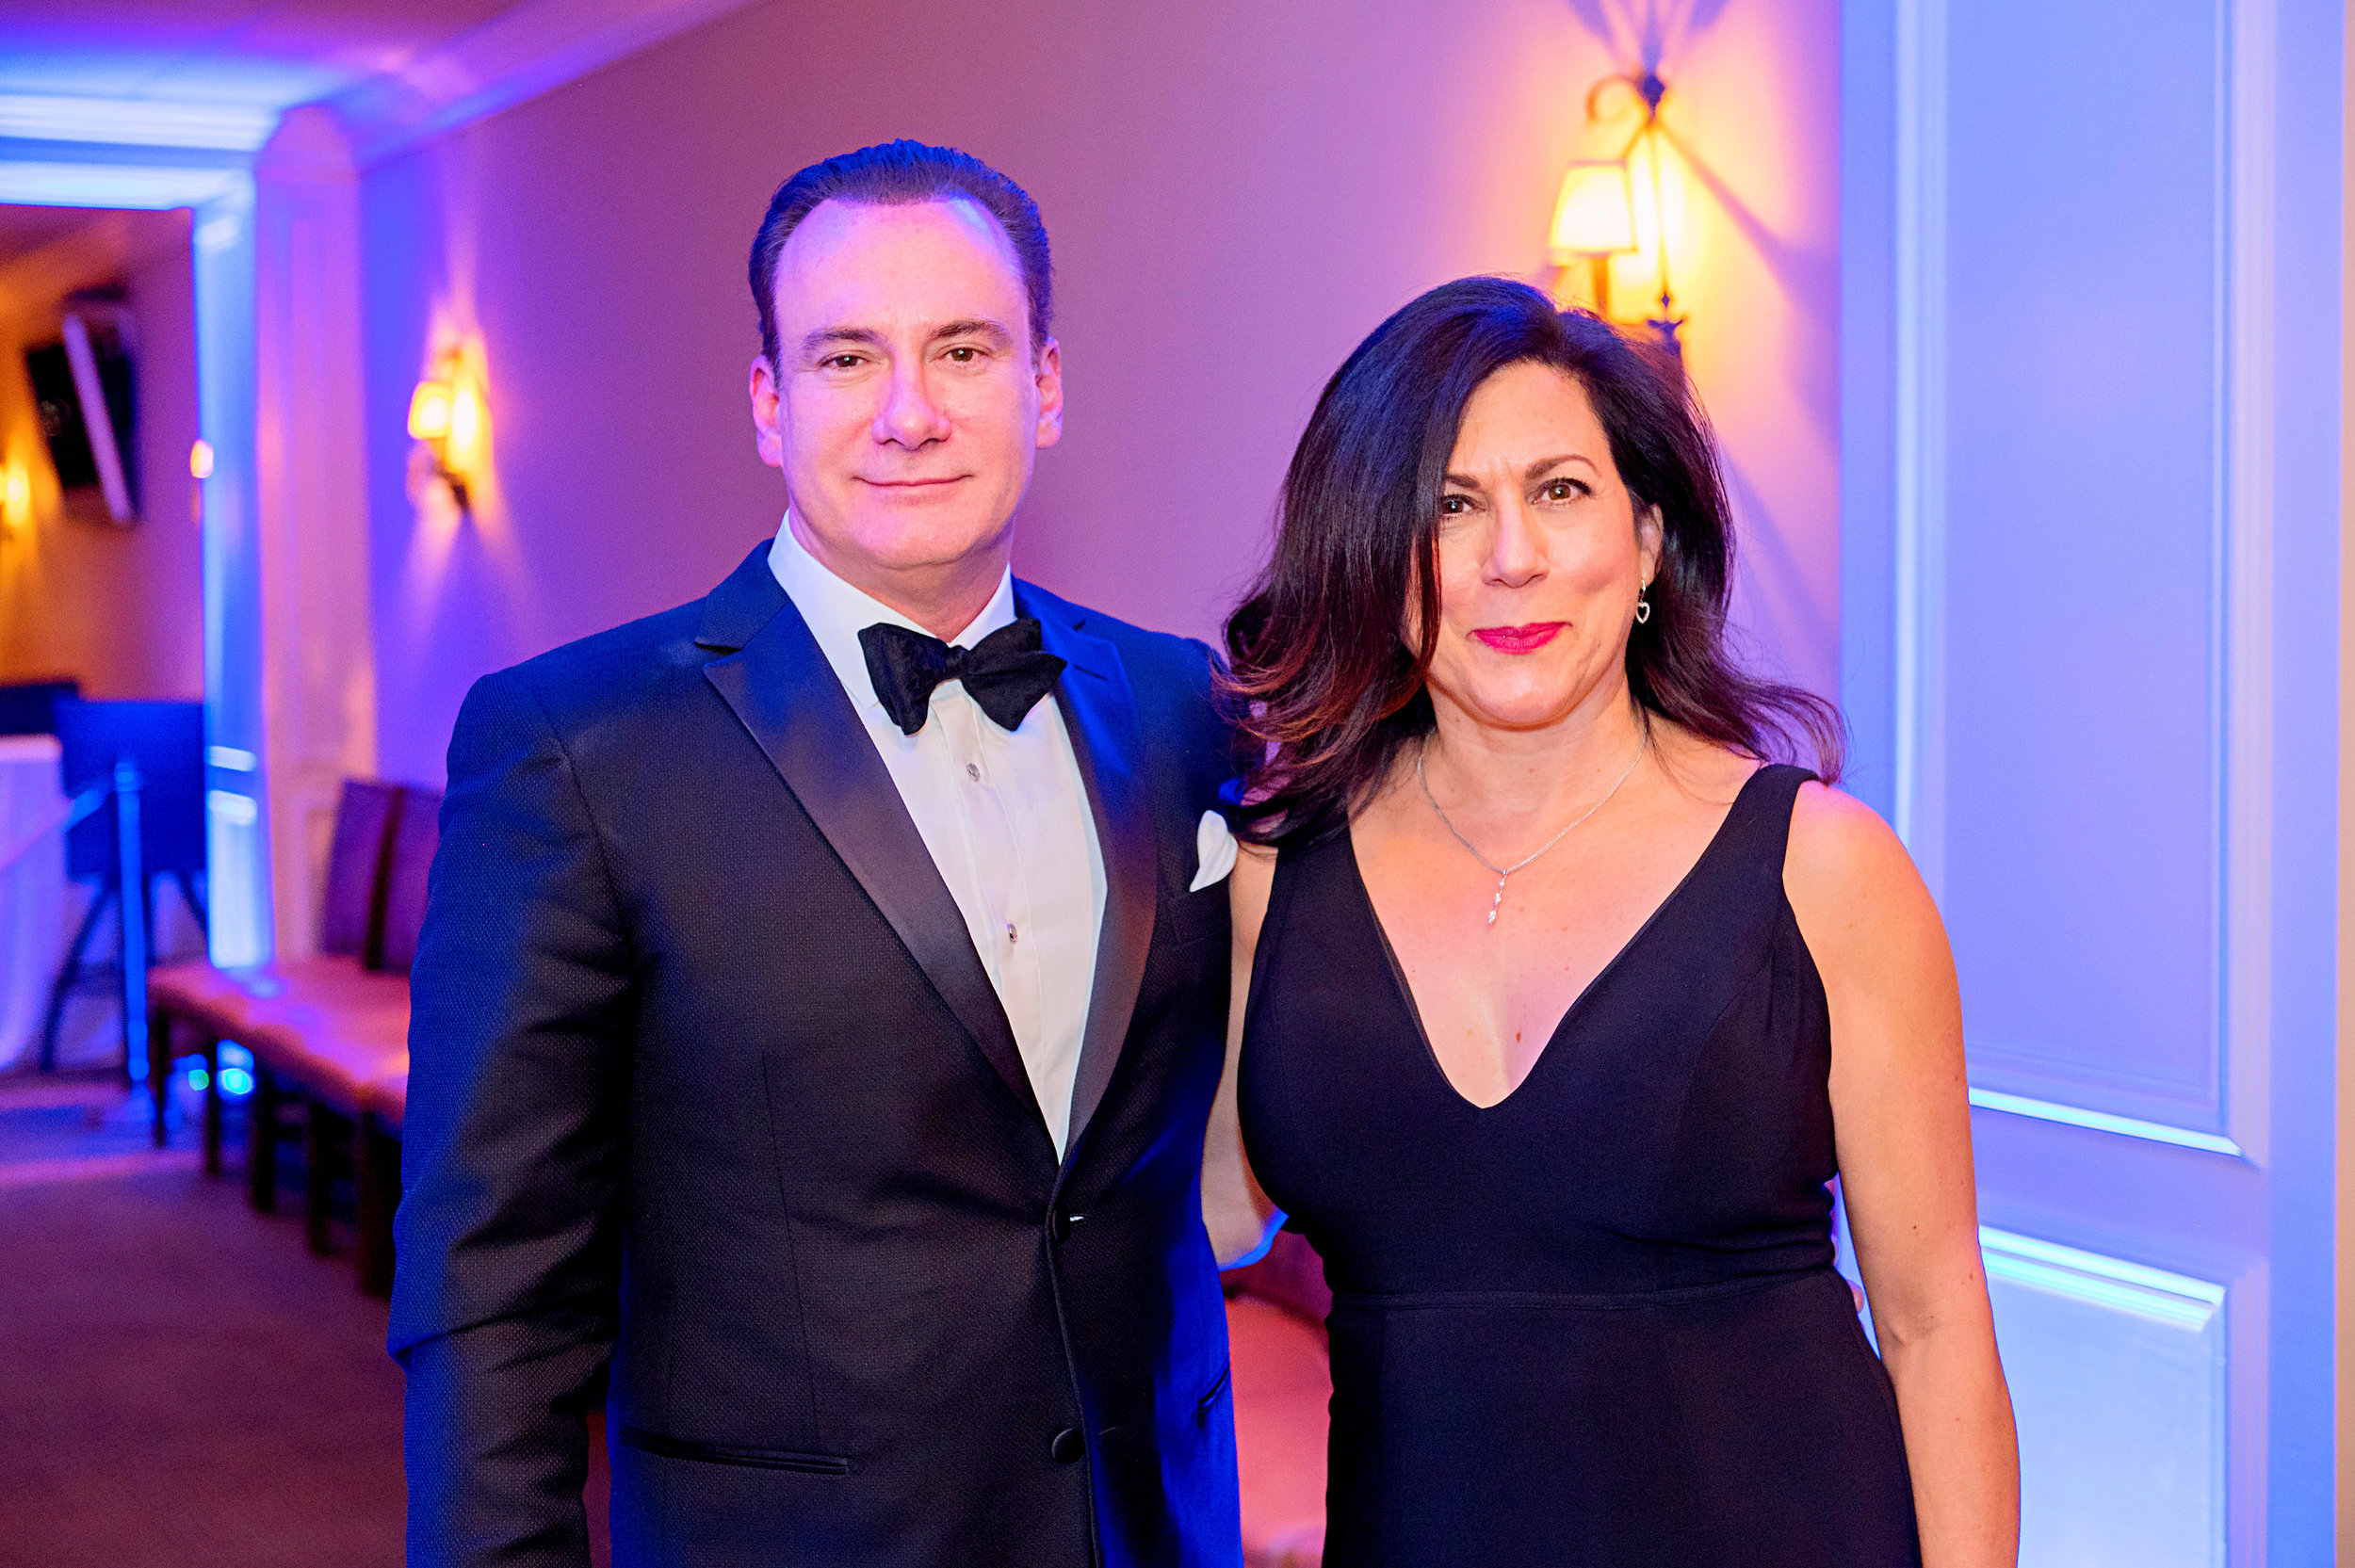 Michael and Maria Zappa at the 2019 Cape Fear Valley Foundation Gala; an event that raised nearly $200,000 to support programs and services within the Health System.